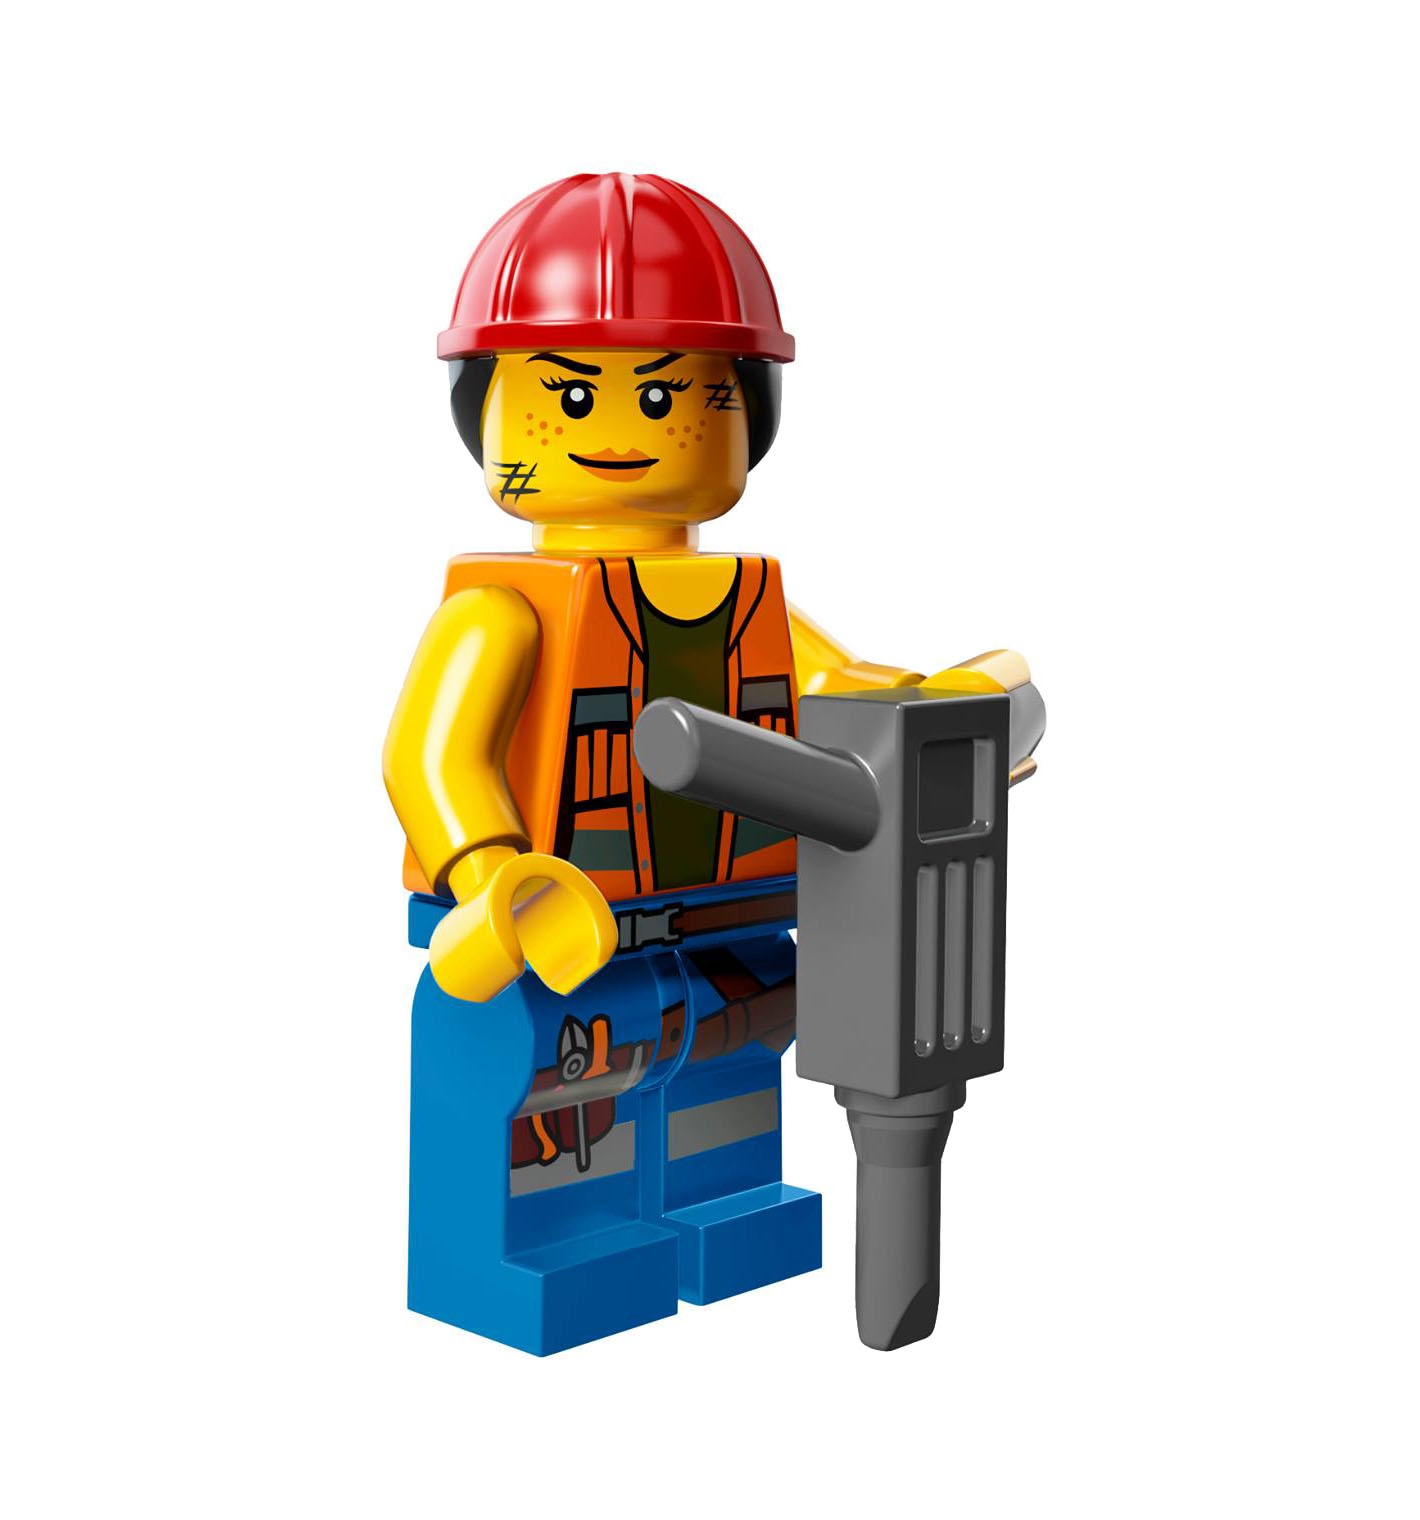 All female construction workers are lesbian - 55 part 9